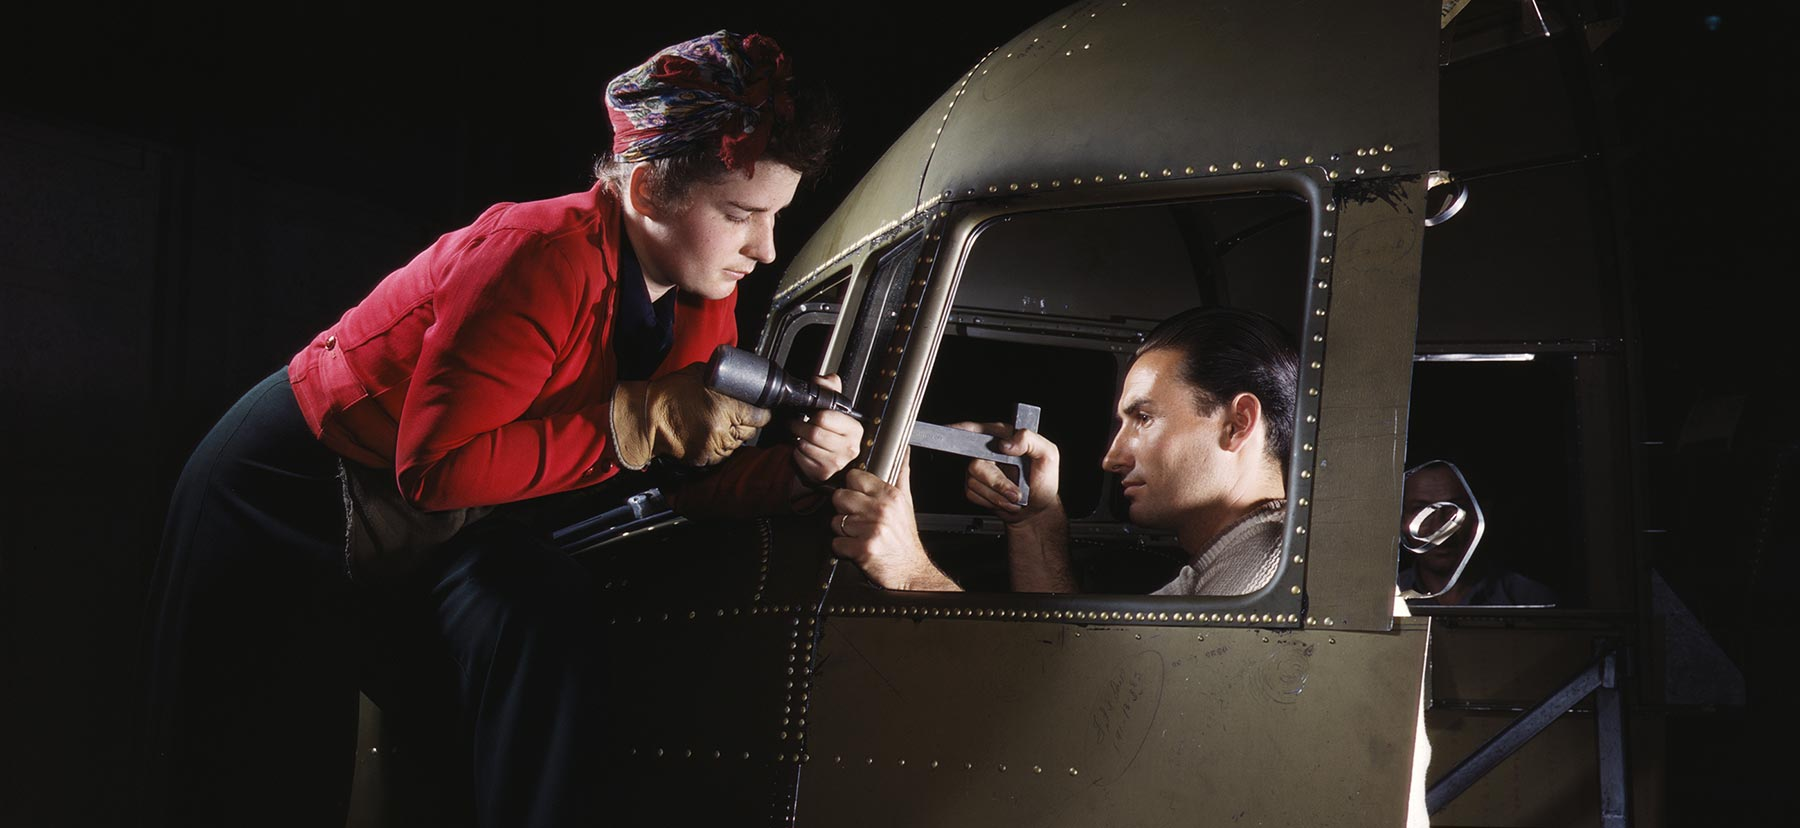 A man and woman riveting a cockpit